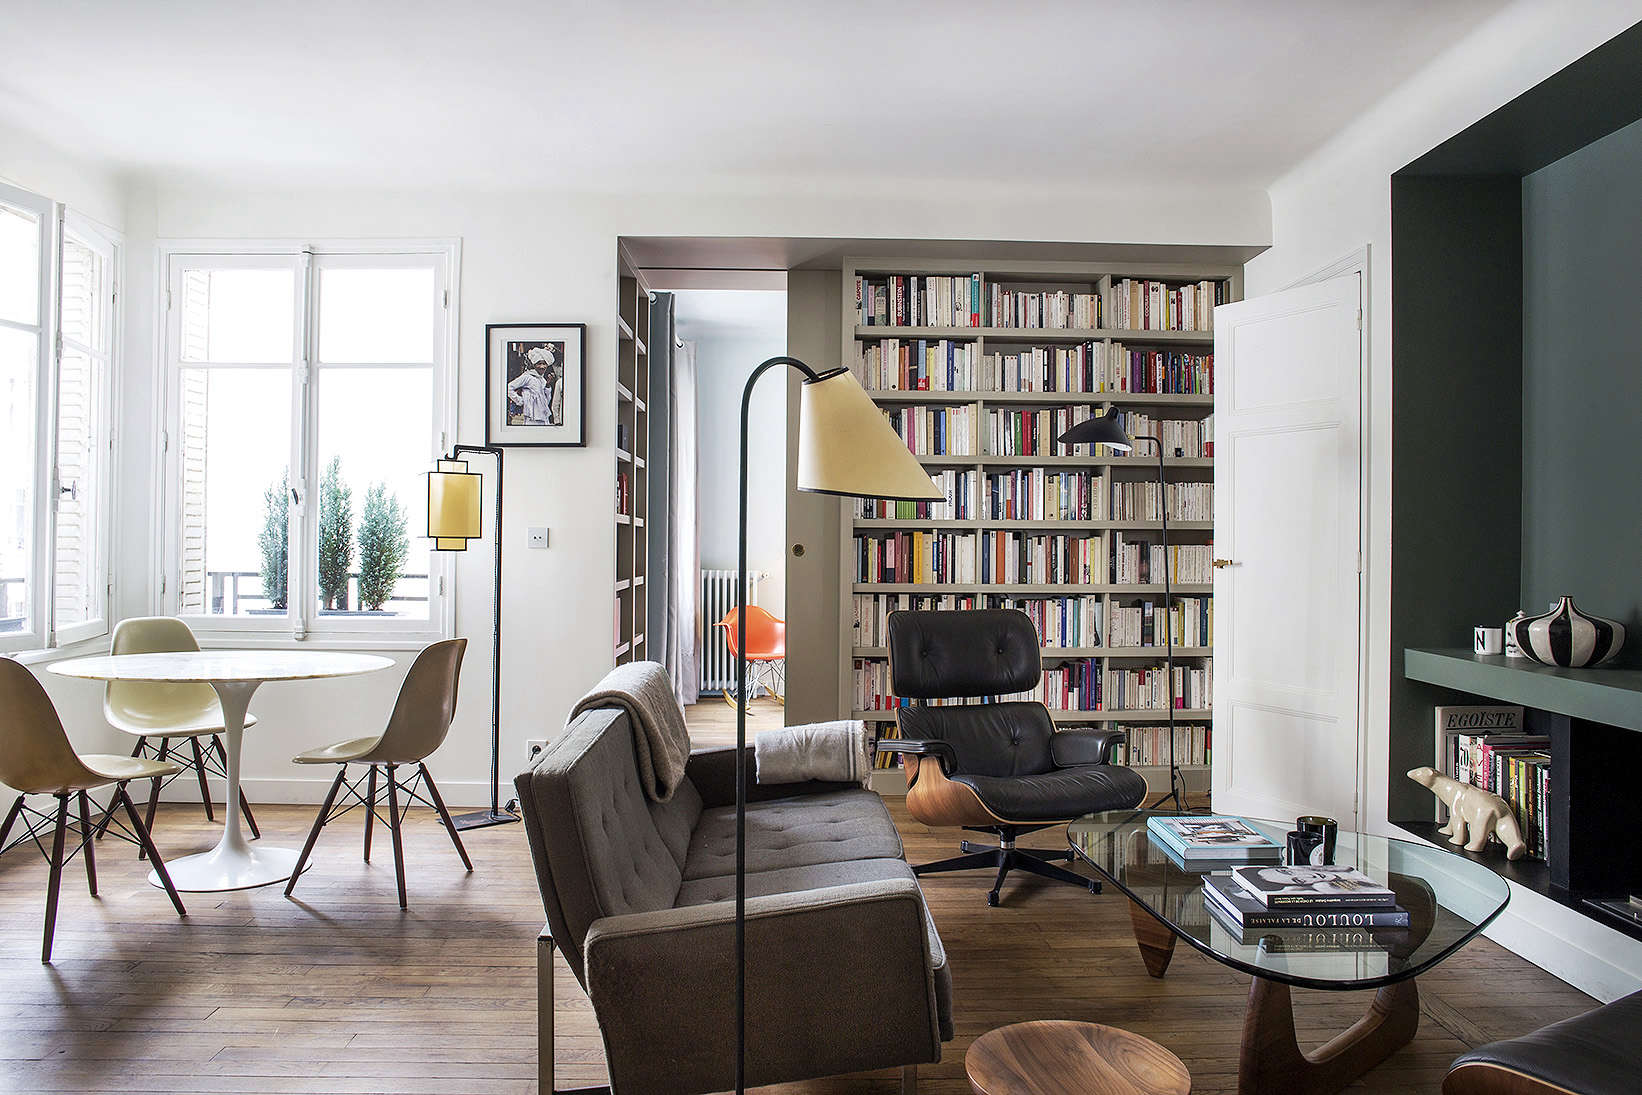 9 small space ideas to steal from a tiny paris apartment - Apartment living room ideas ...